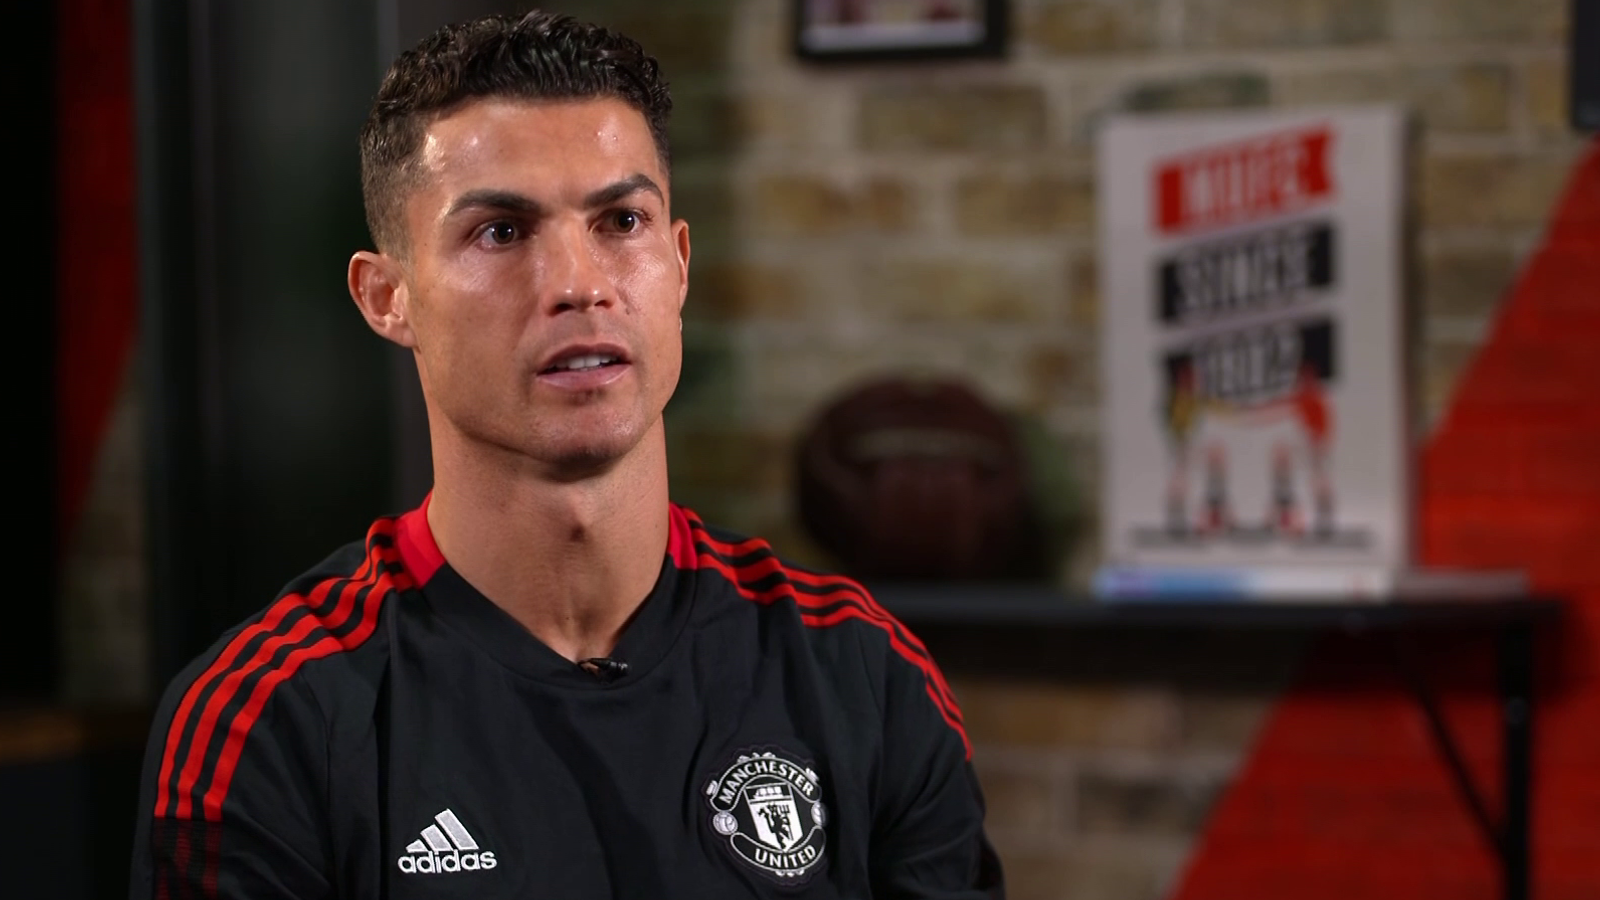 Cristiano Ronaldo: Man Utd still need time to adapt - but I want to push my level even higher